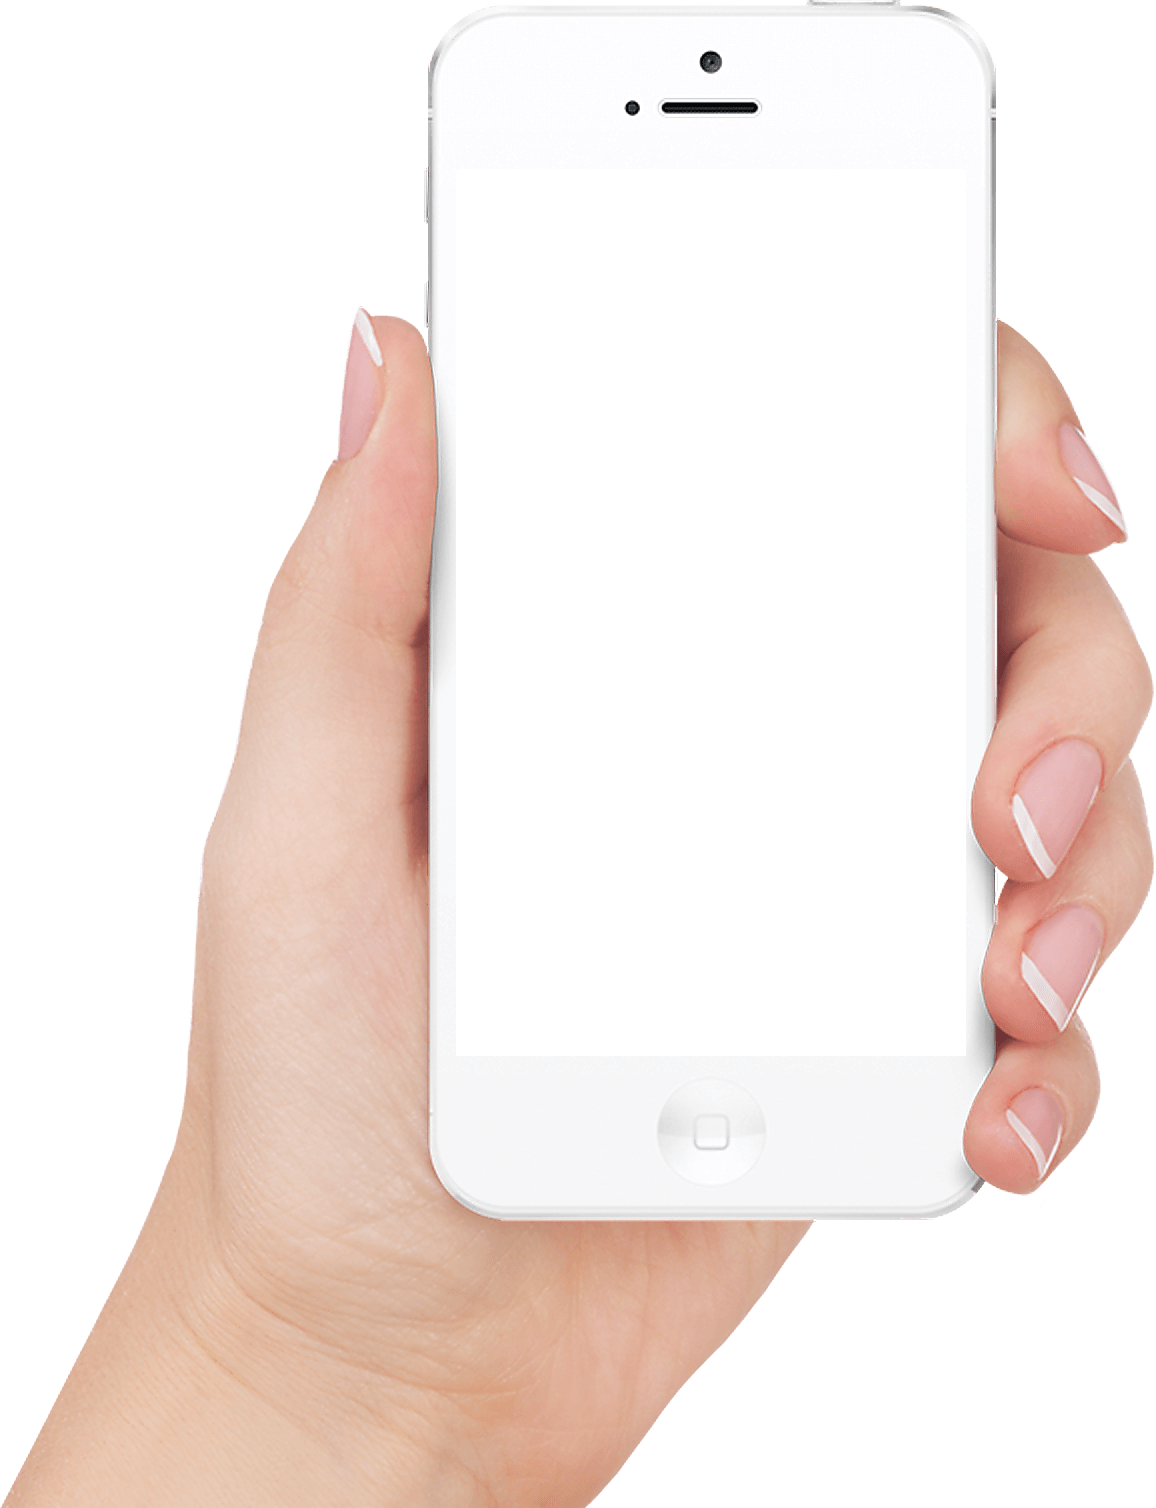 In Hand White Iphone transparent PNG.